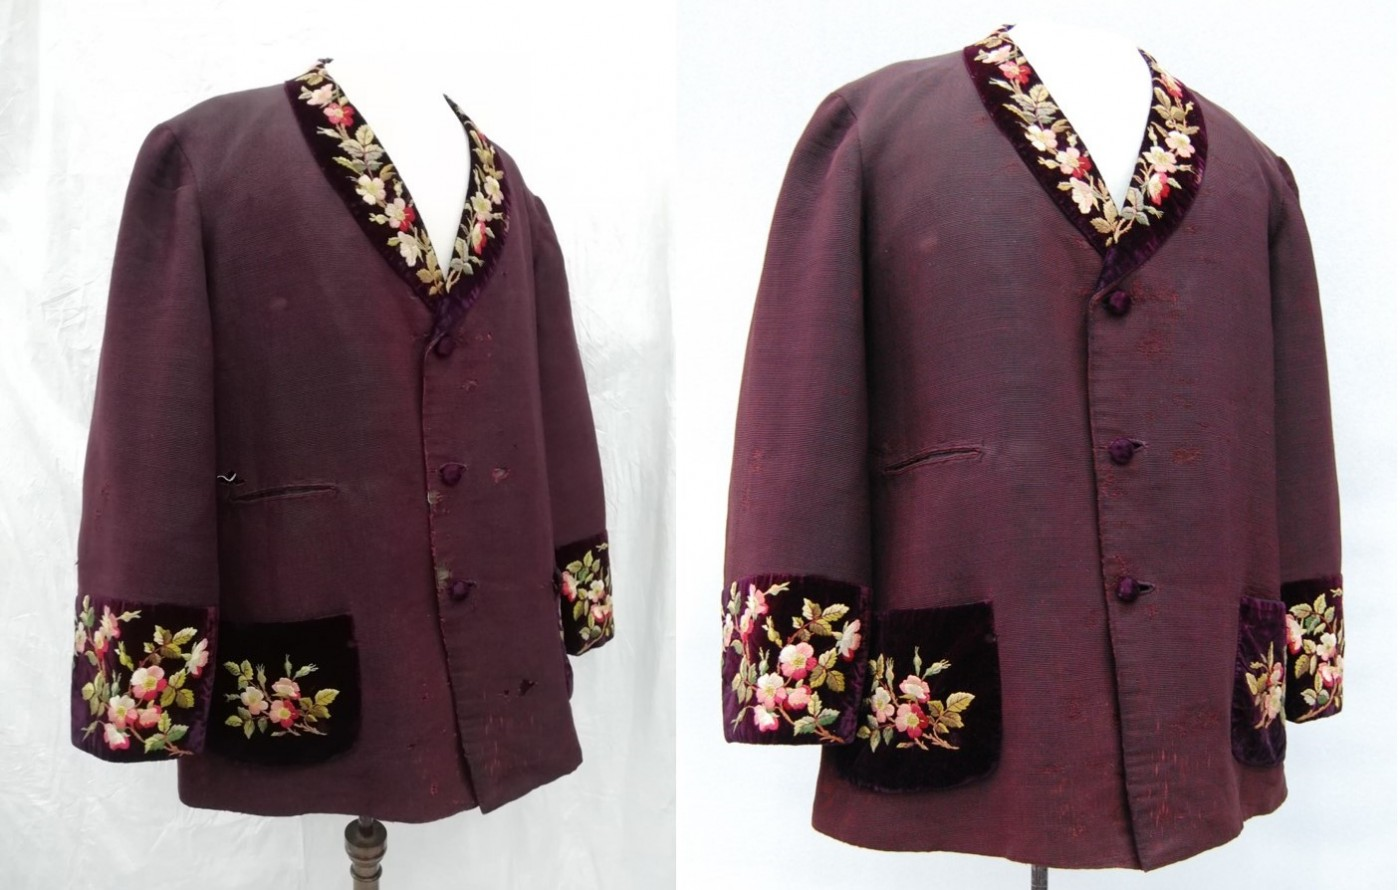 Manchester jacket before and after conservation © Zenzie Tinker Conservation